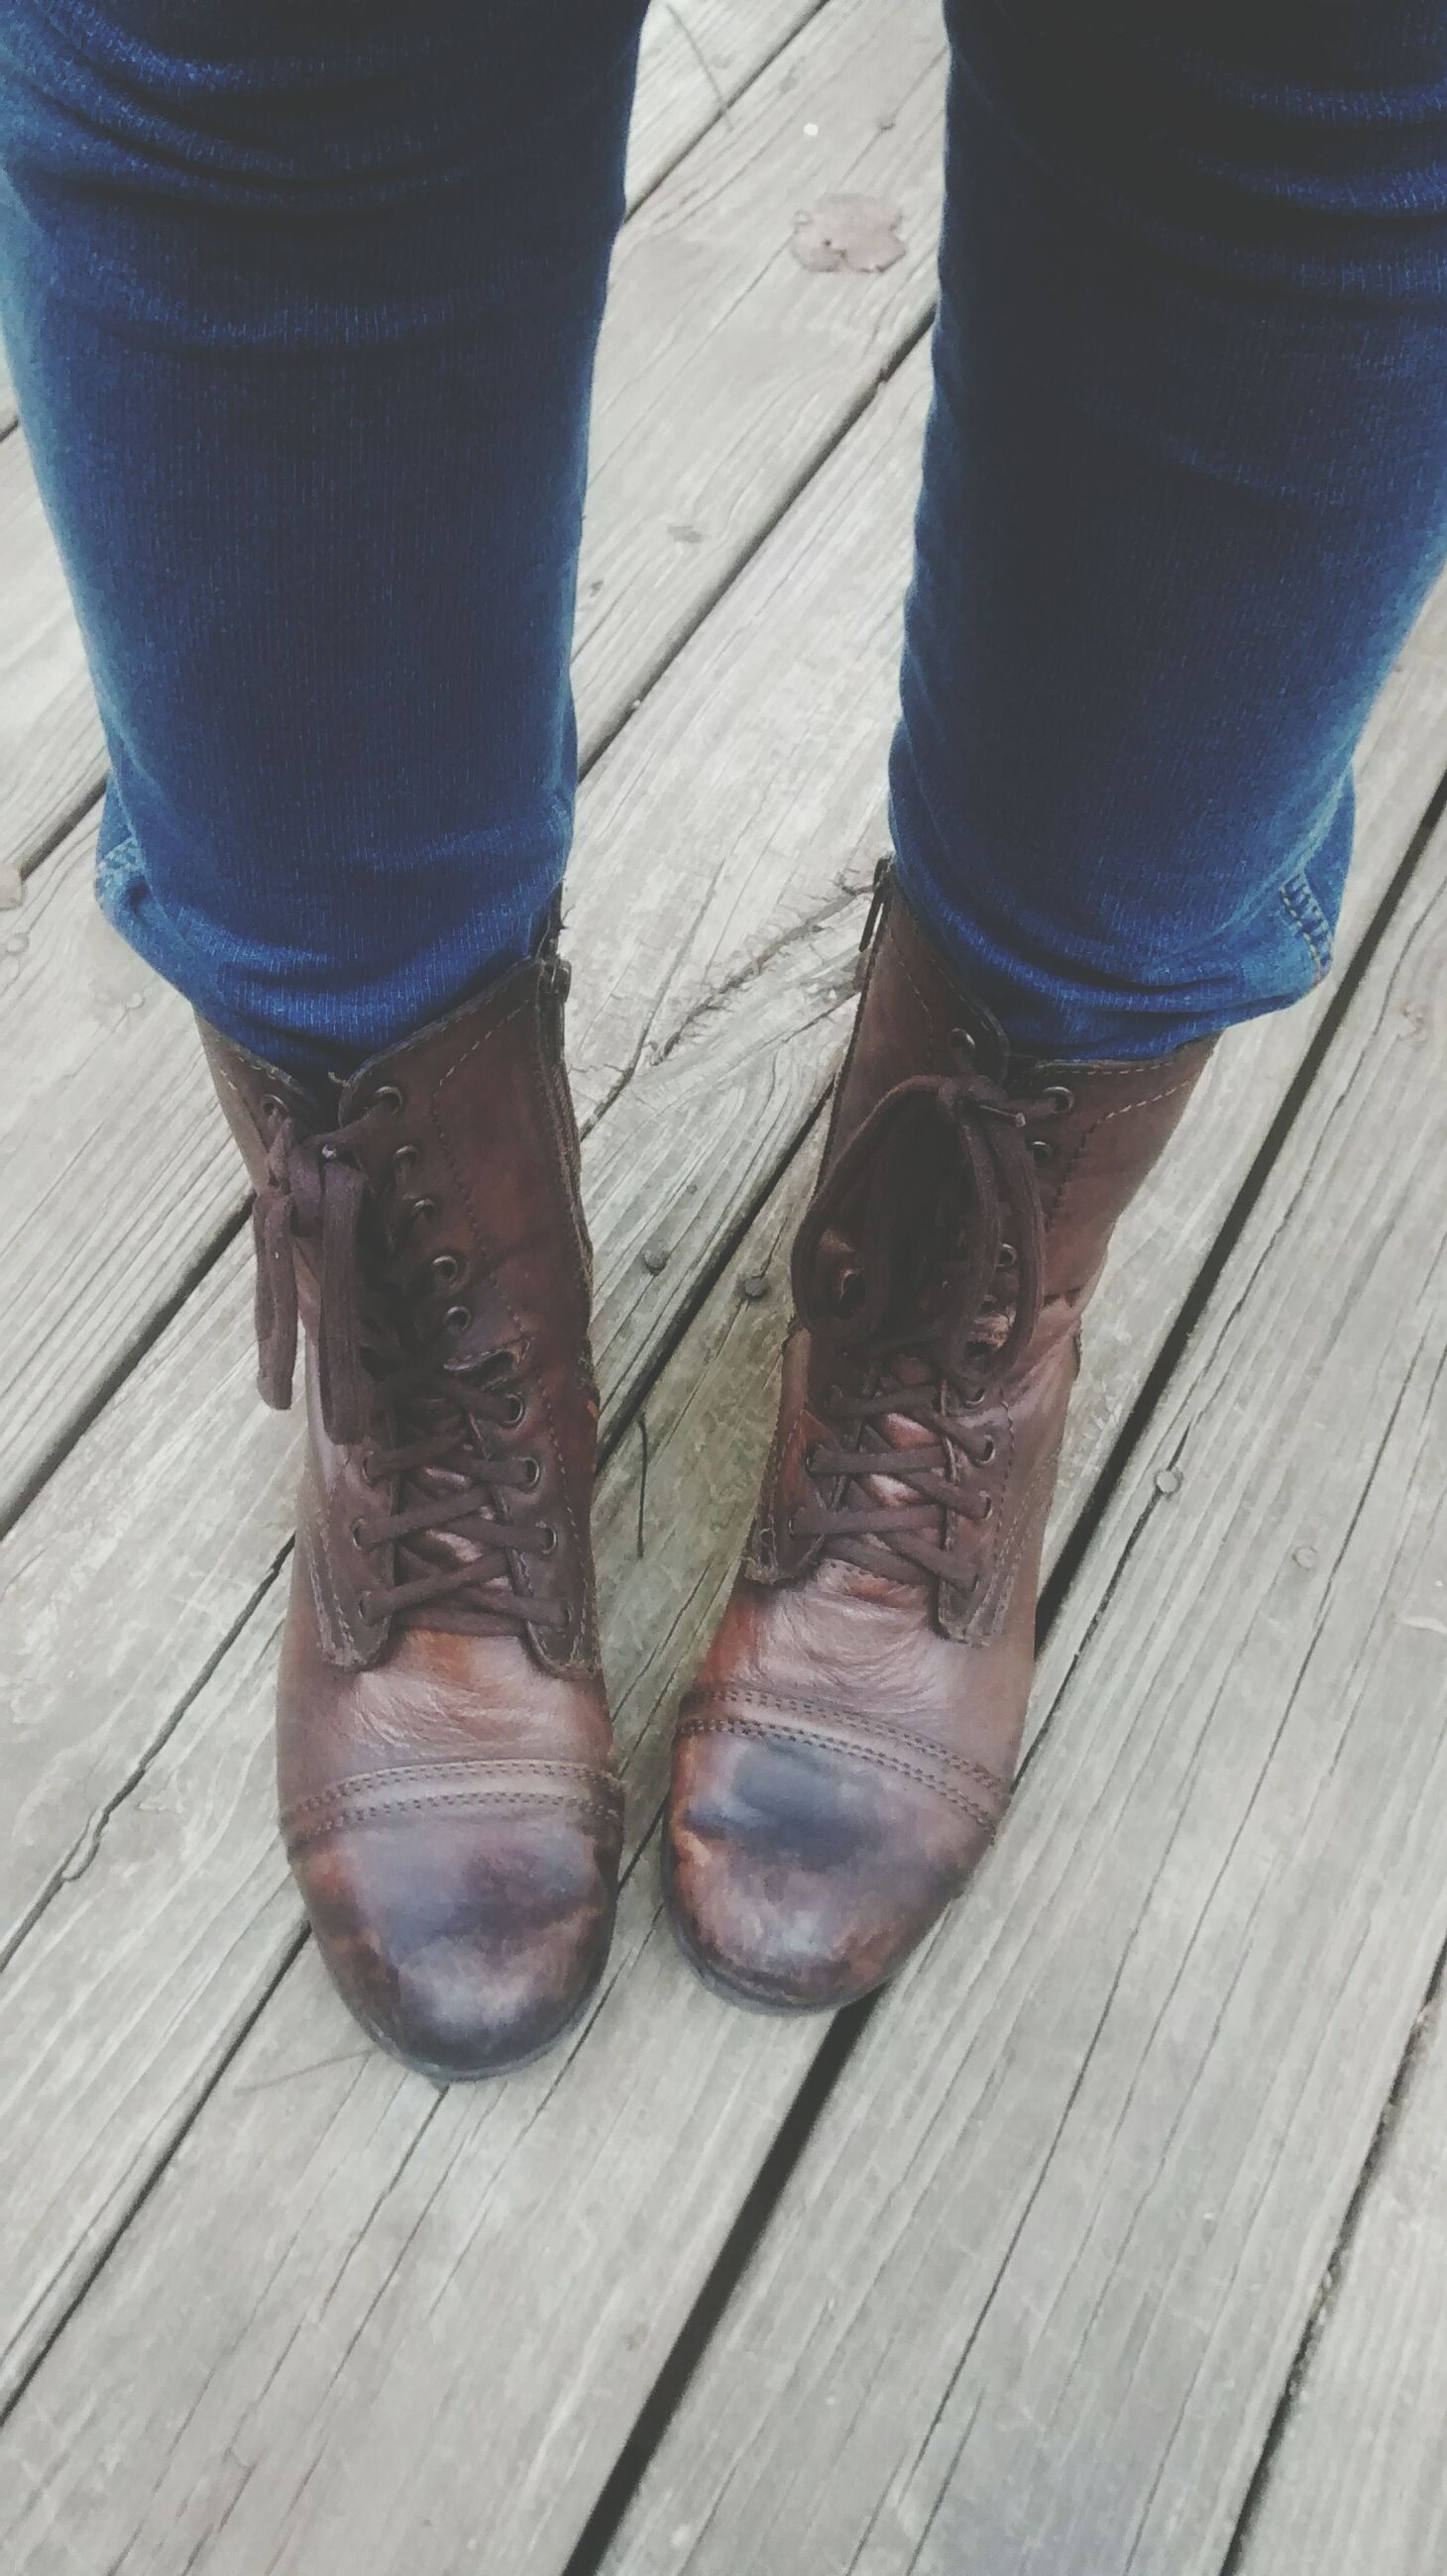 wood - material, wooden, shoe, plank, wood, low section, high angle view, close-up, boardwalk, footwear, person, table, hardwood floor, metal, part of, still life, pair, brown, outdoors, day